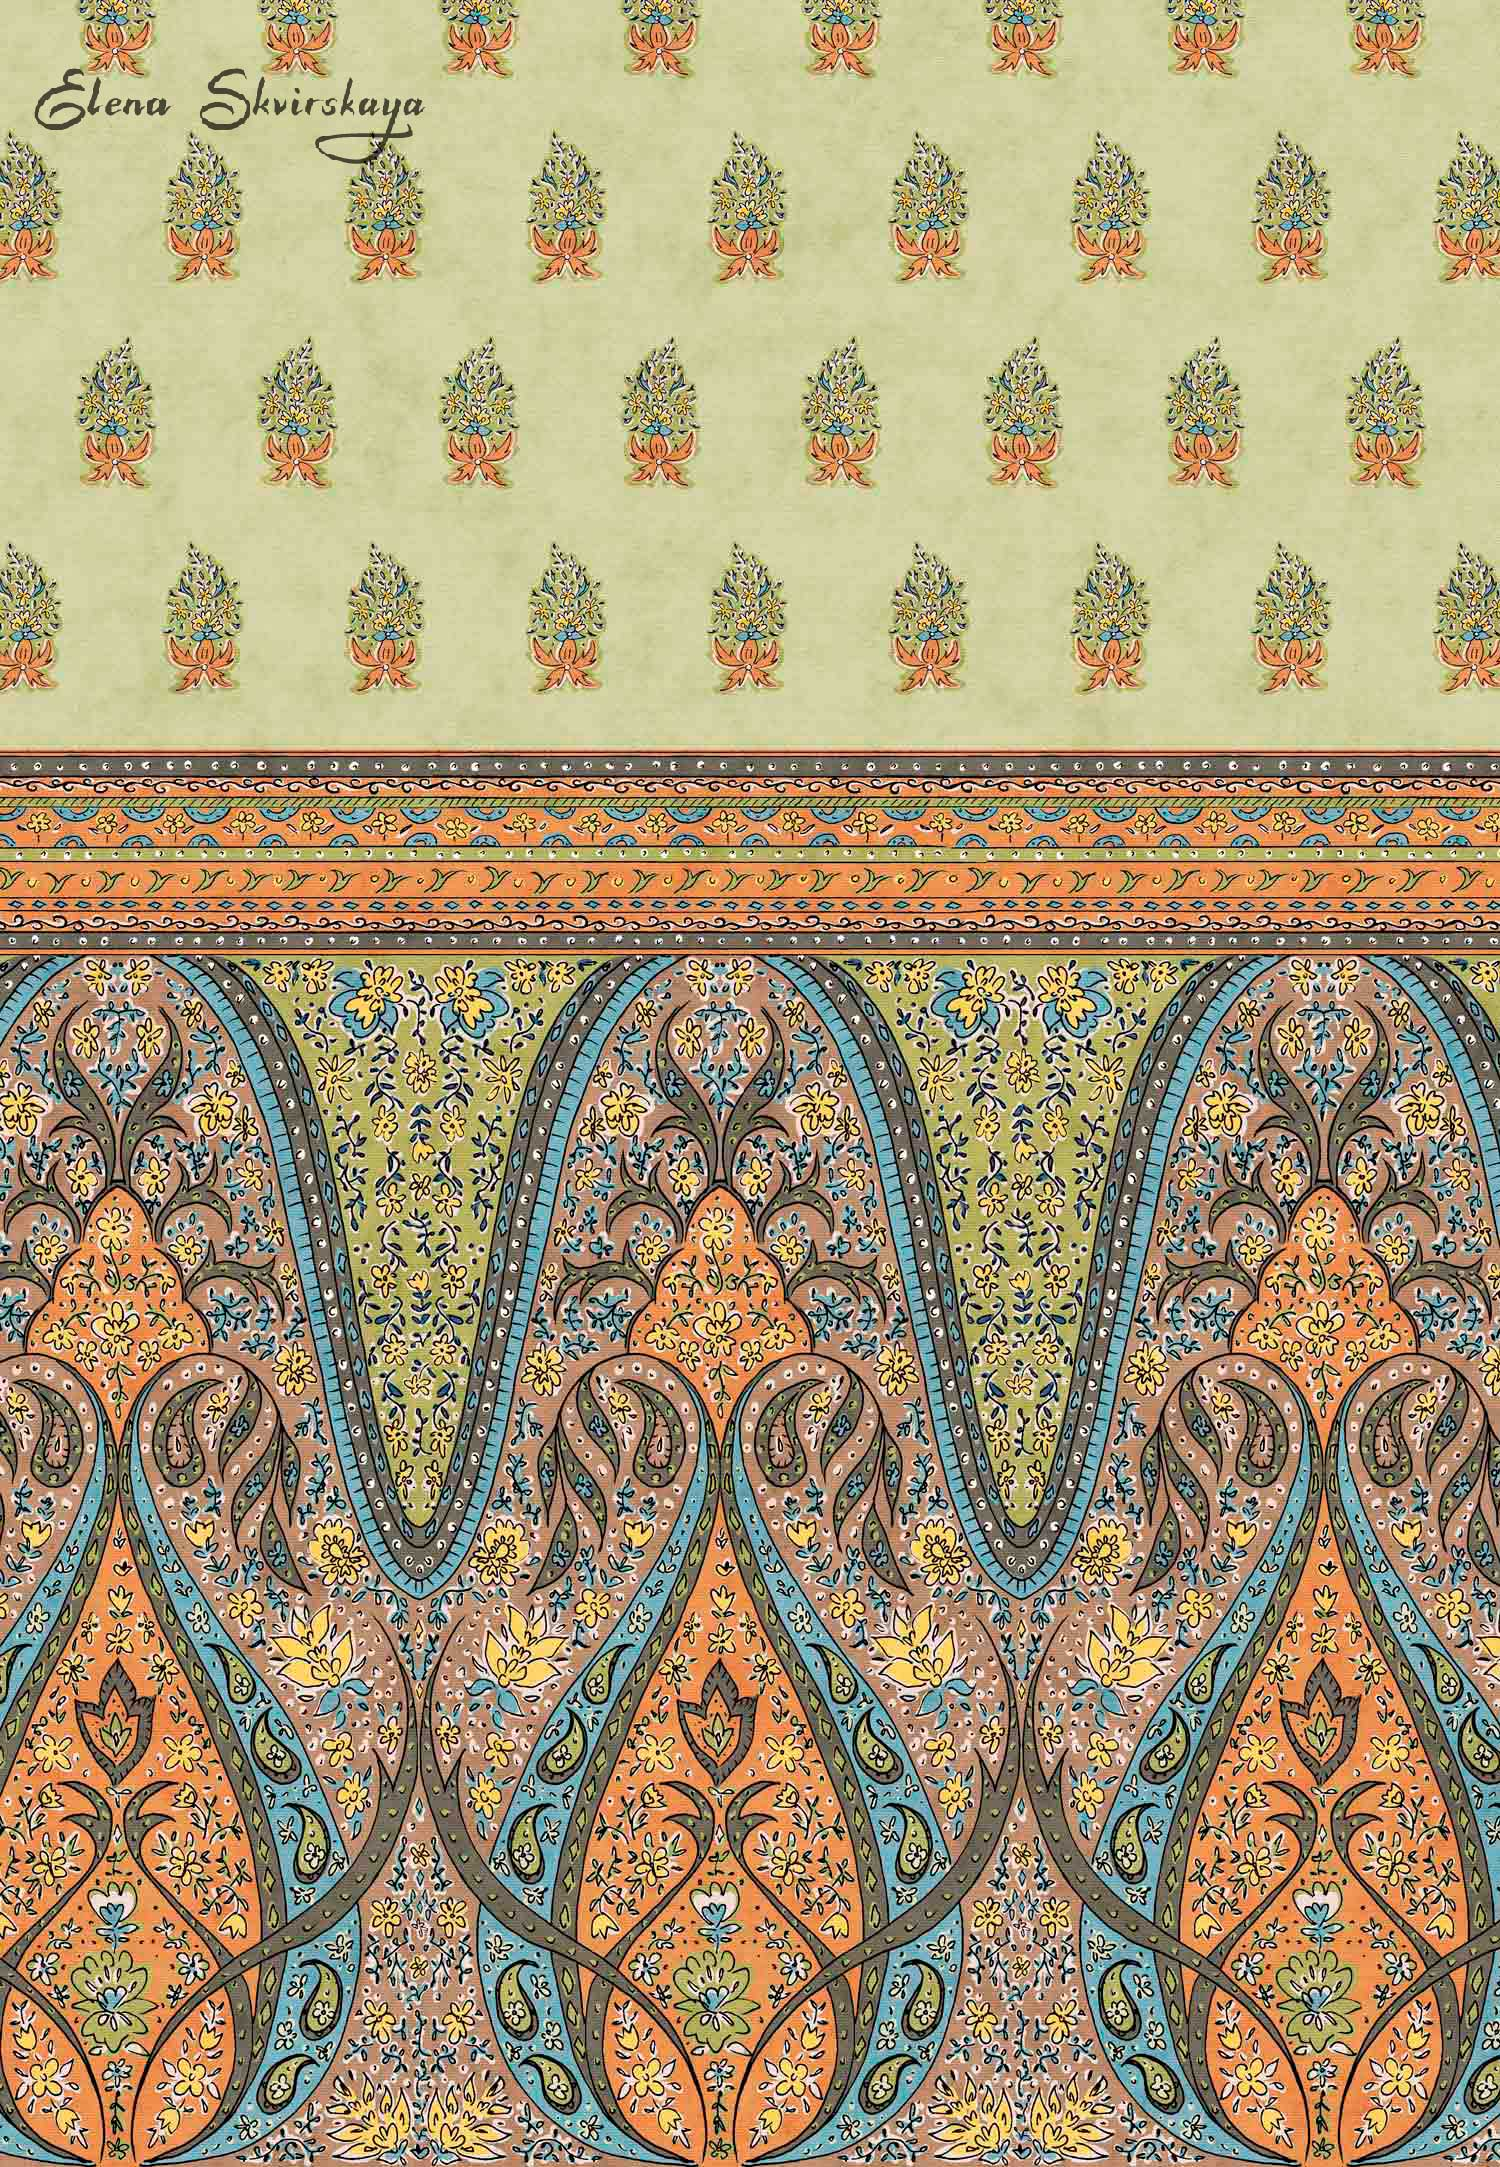 hand drawn original border print, inspired by Indian paisley designs